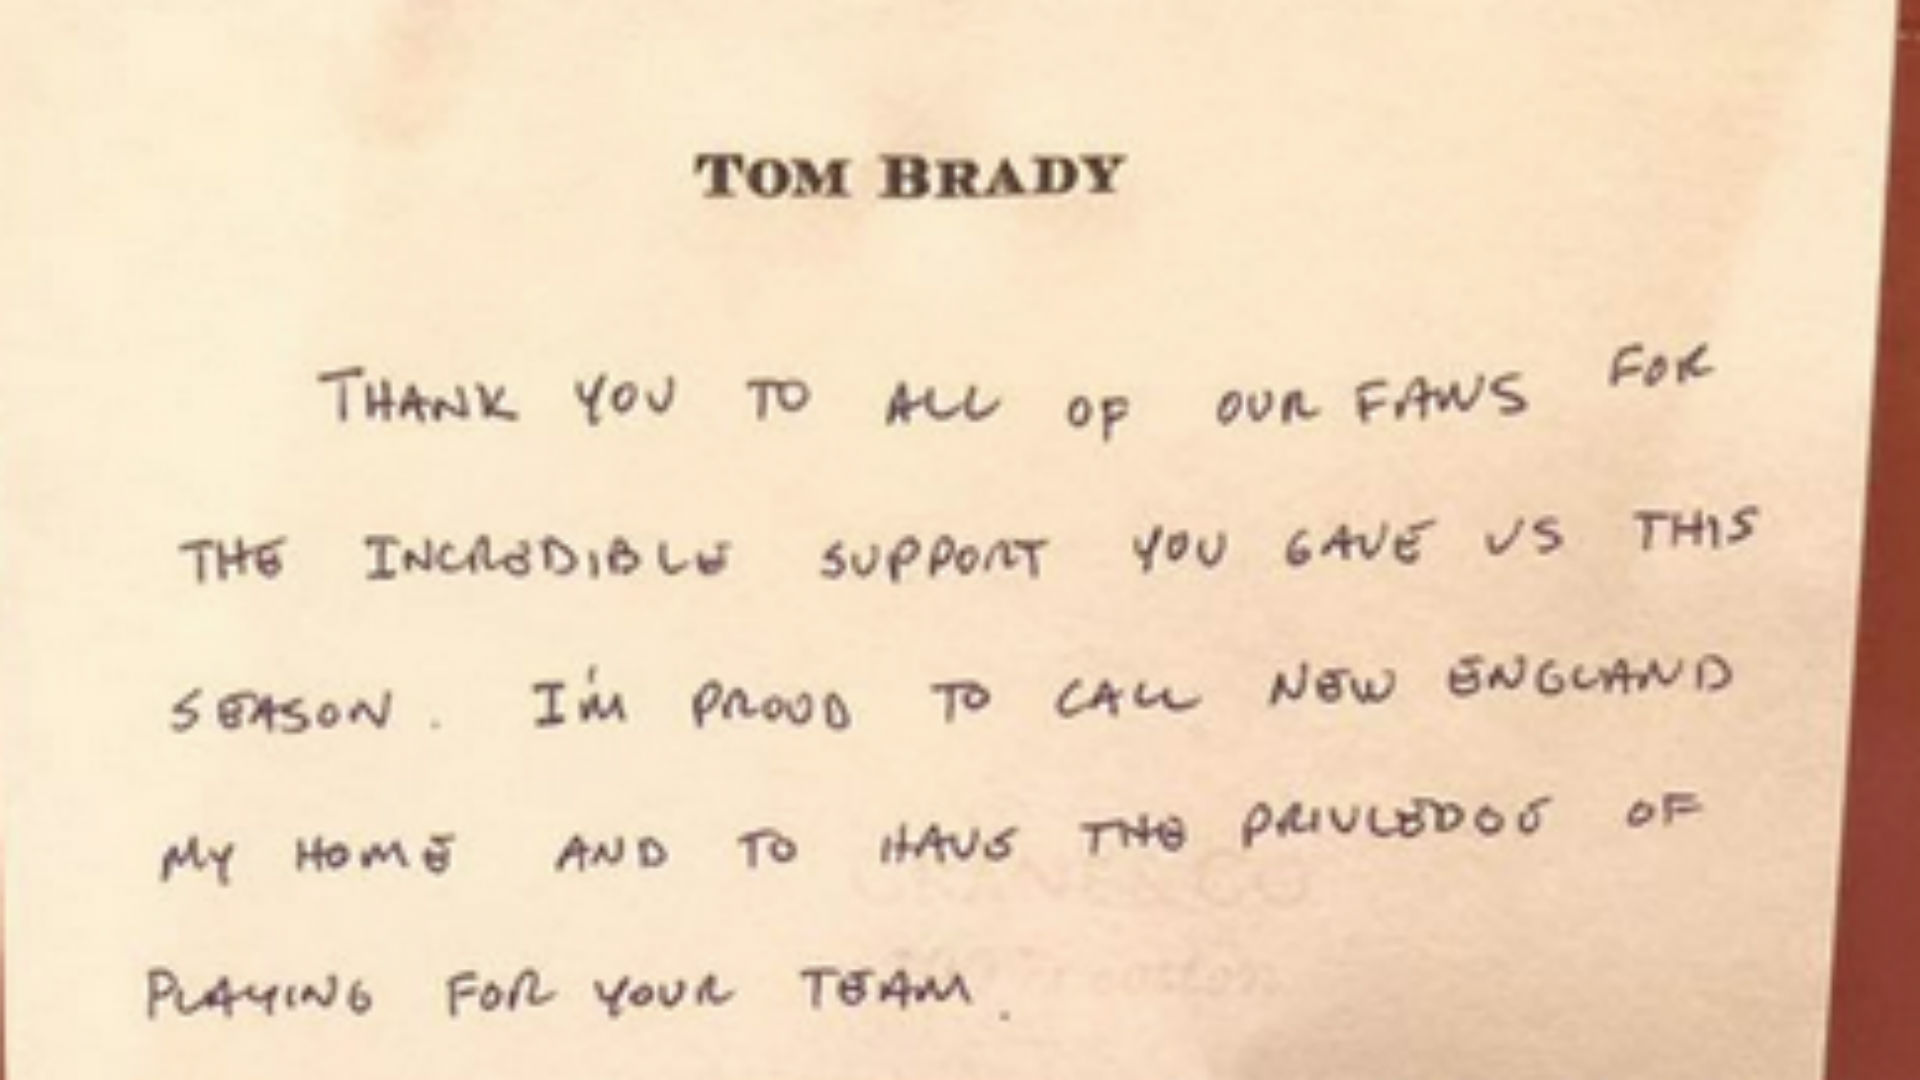 Check out the handwritten letter Tom Brady wrote to Patriots fans